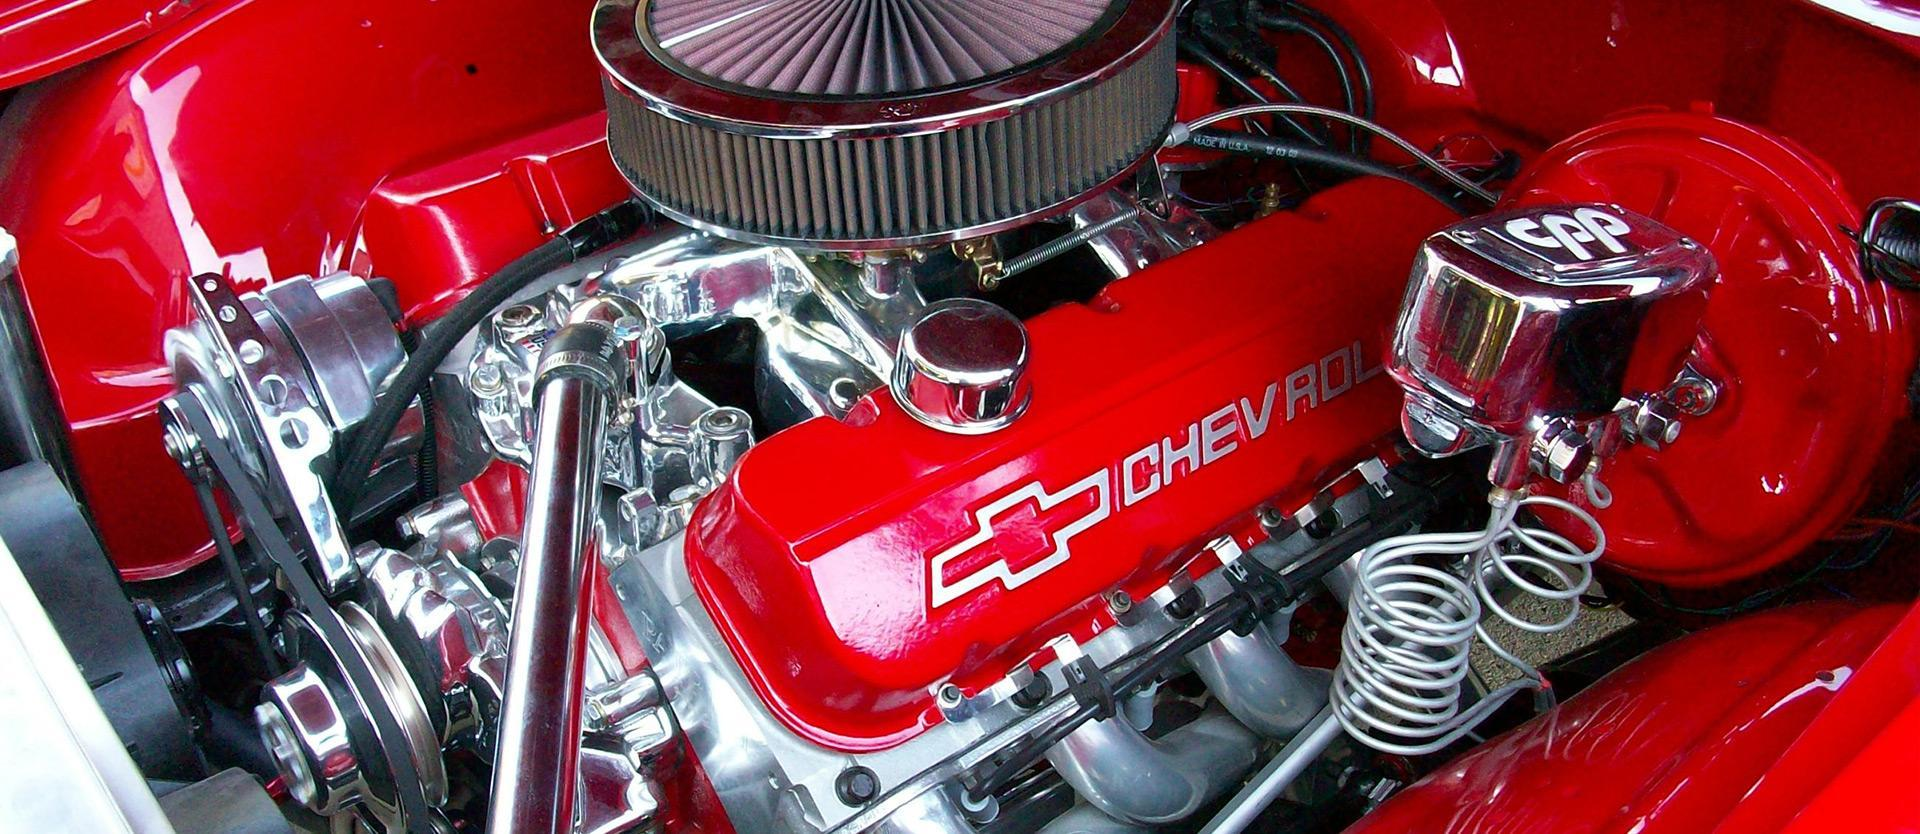 Chevy Big Block Custom Engines | Prestige Motorsports